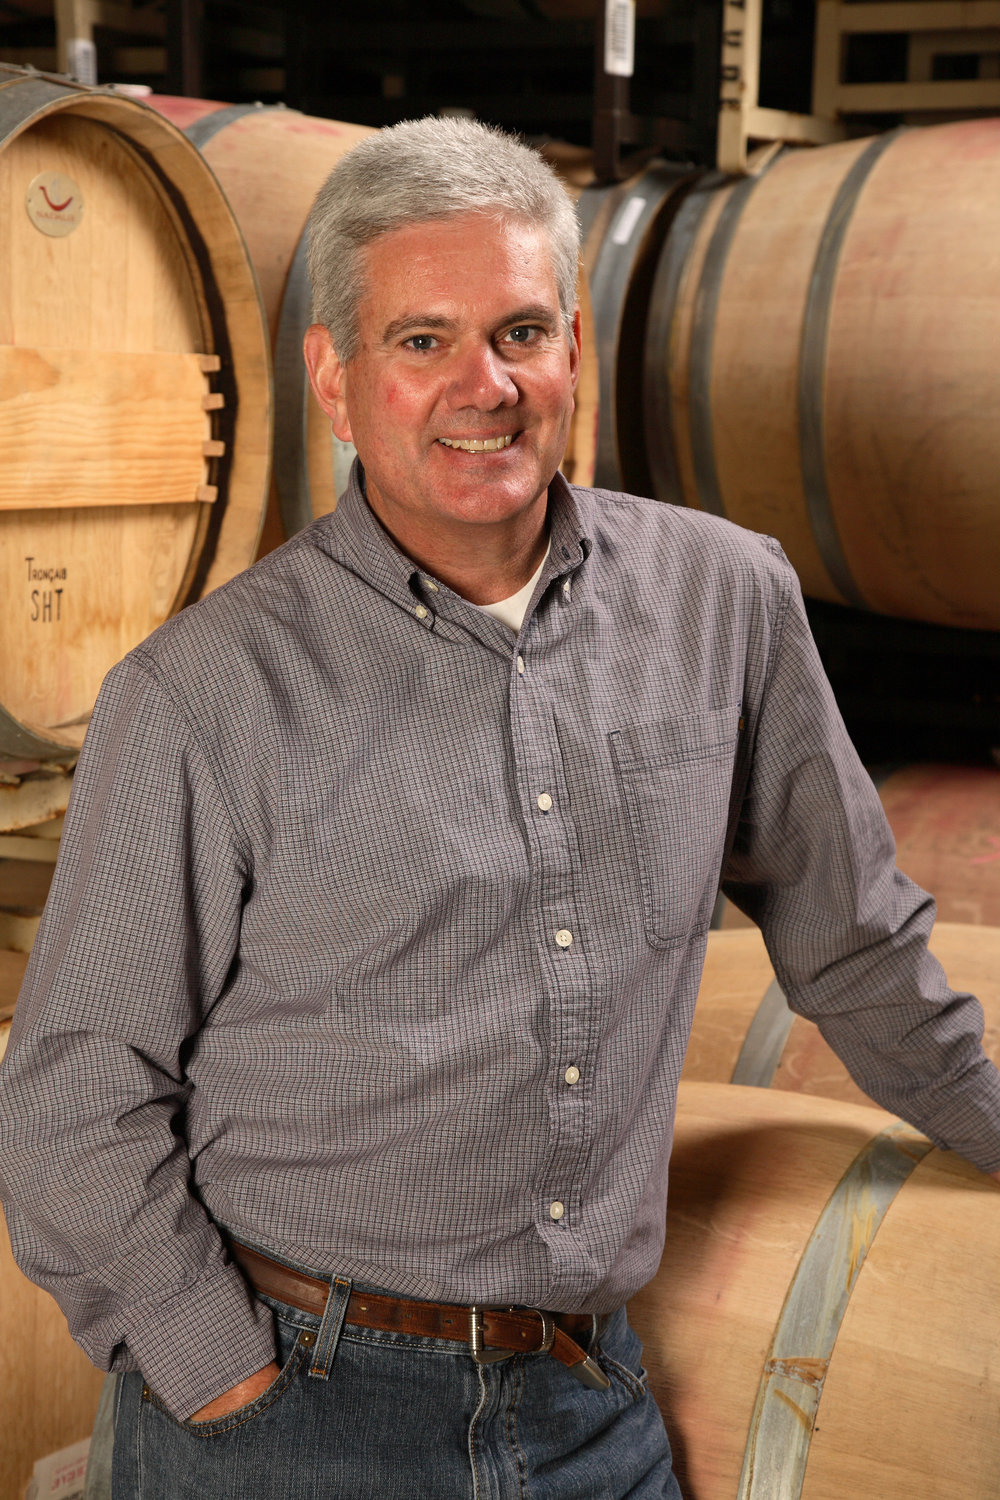 Jon Priest, winemaker and general manager Etude Wines, Carneros.